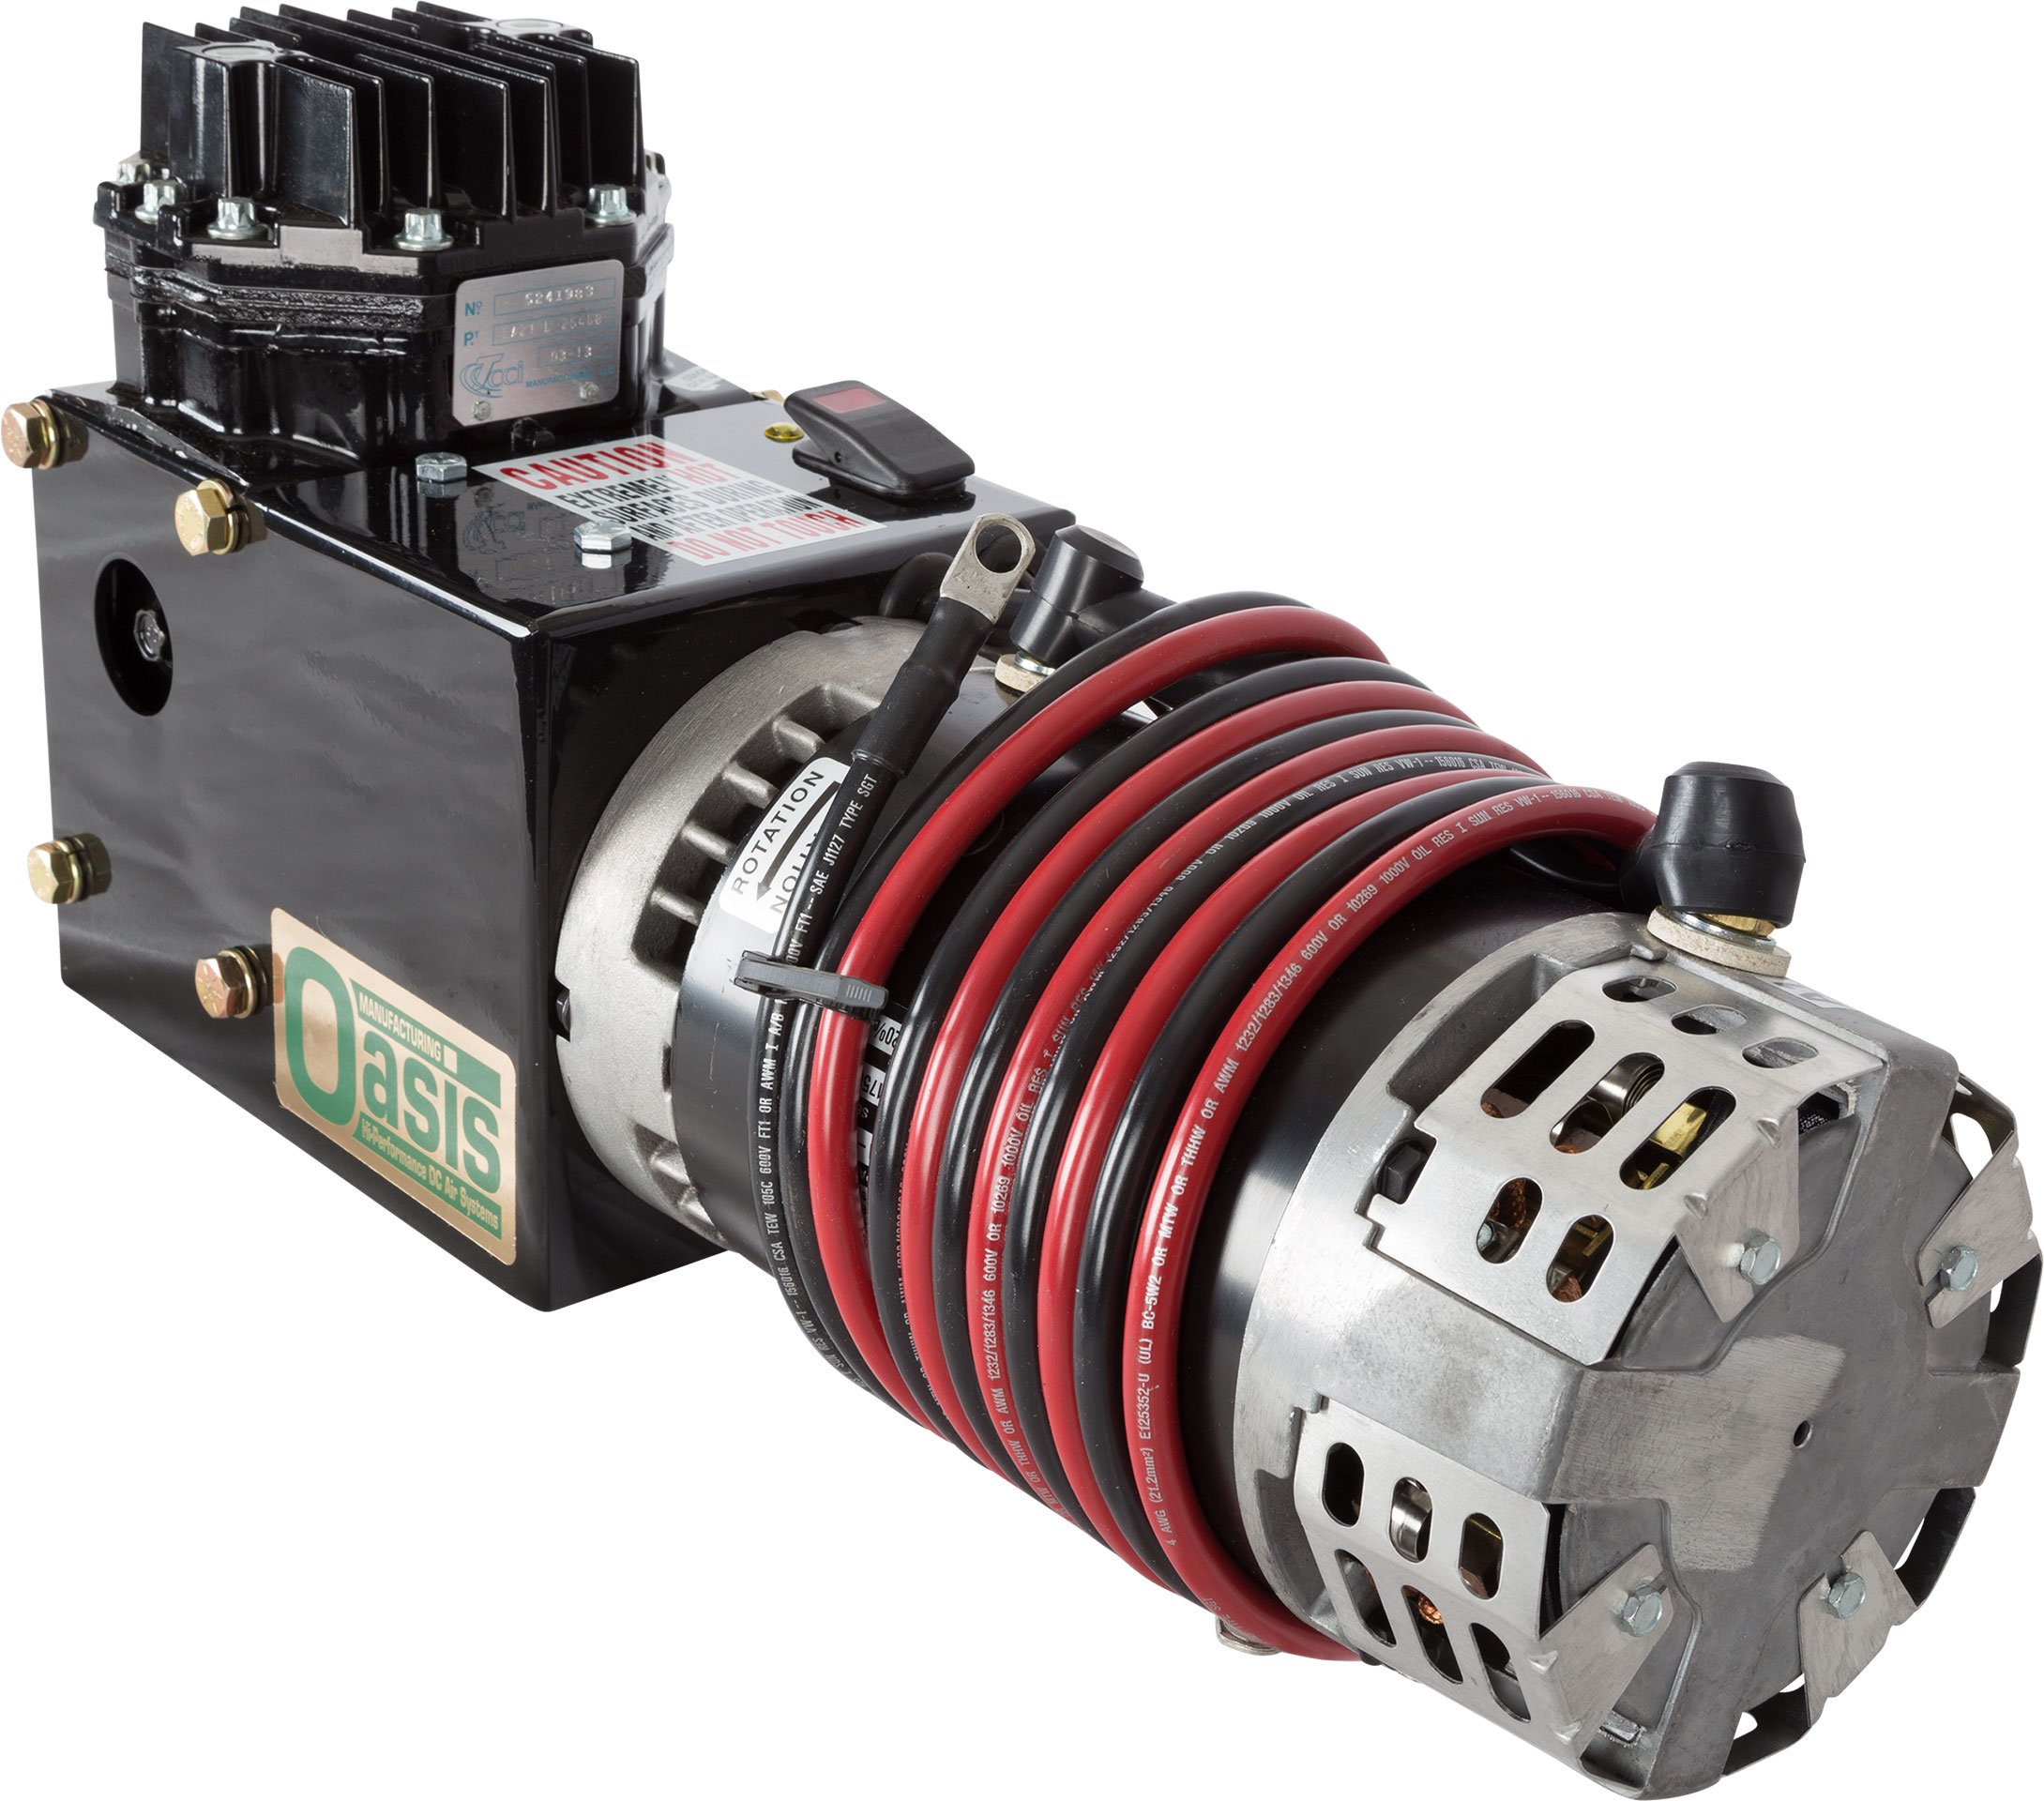 oasis xd v extreme air compressor for air suspension train air zenith ob2 air compressor